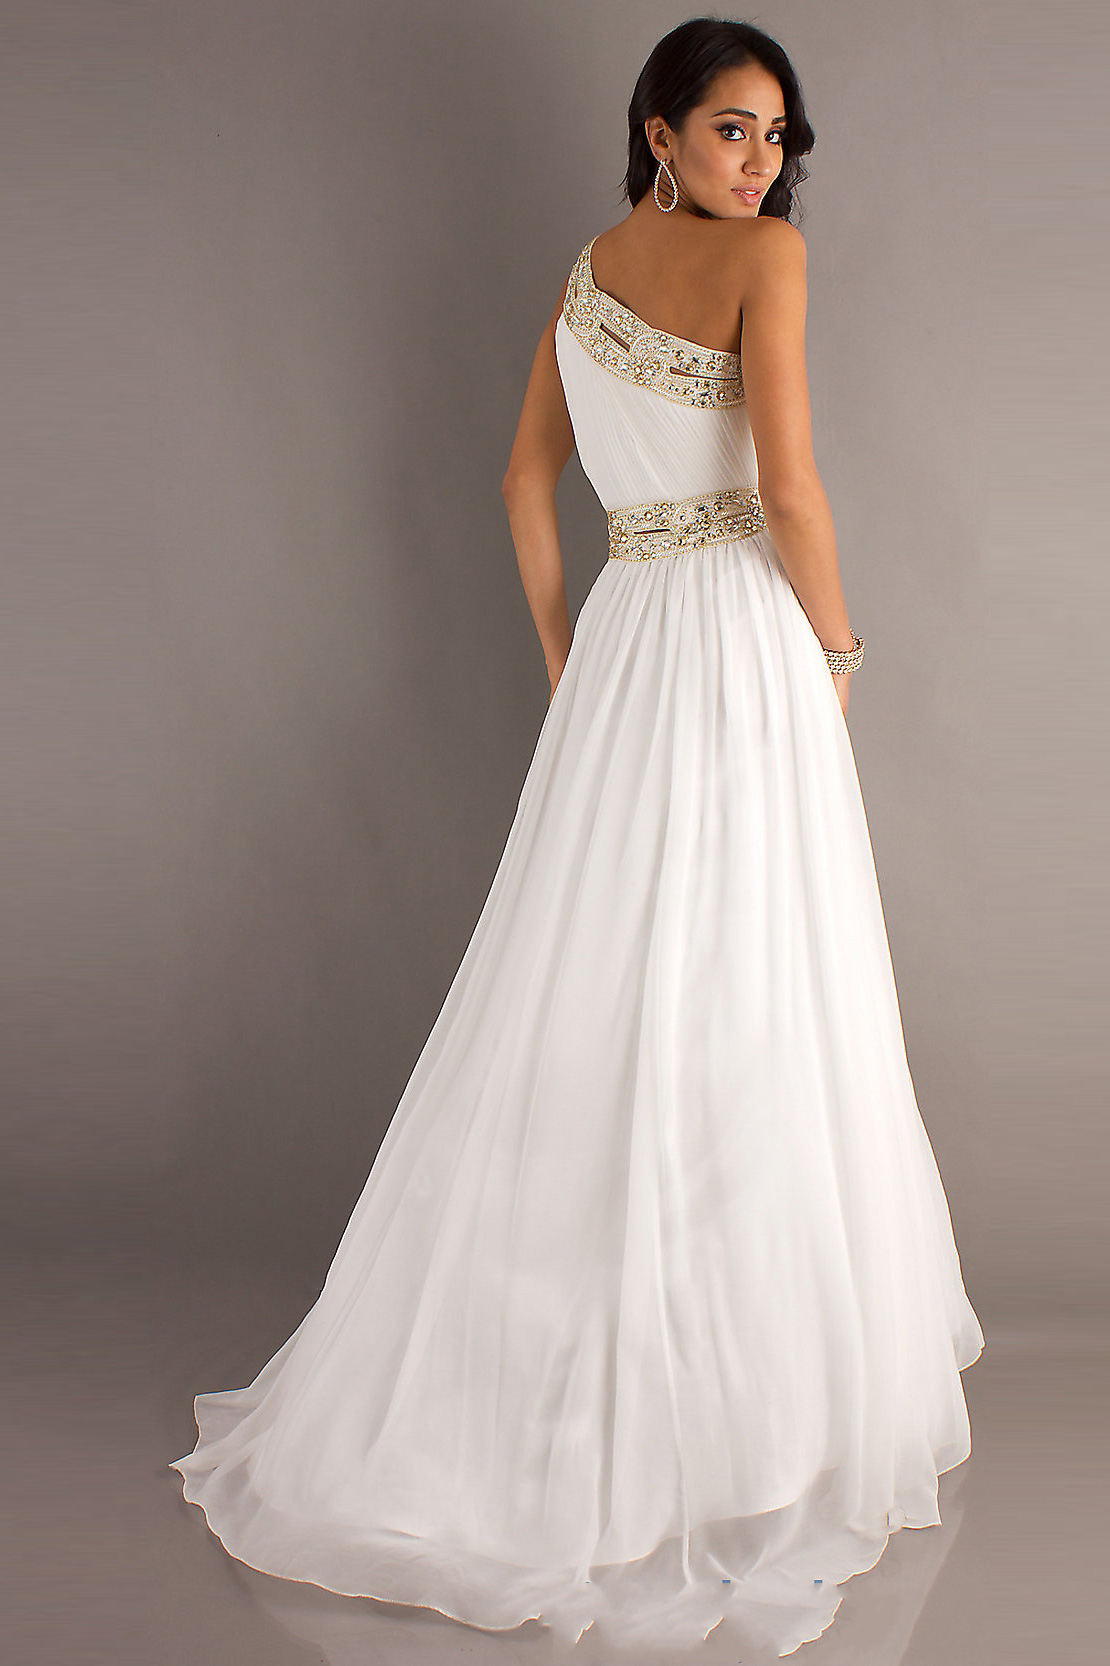 Buy Split Front One Shoulder White Prom Dresses On Sale,high quality!